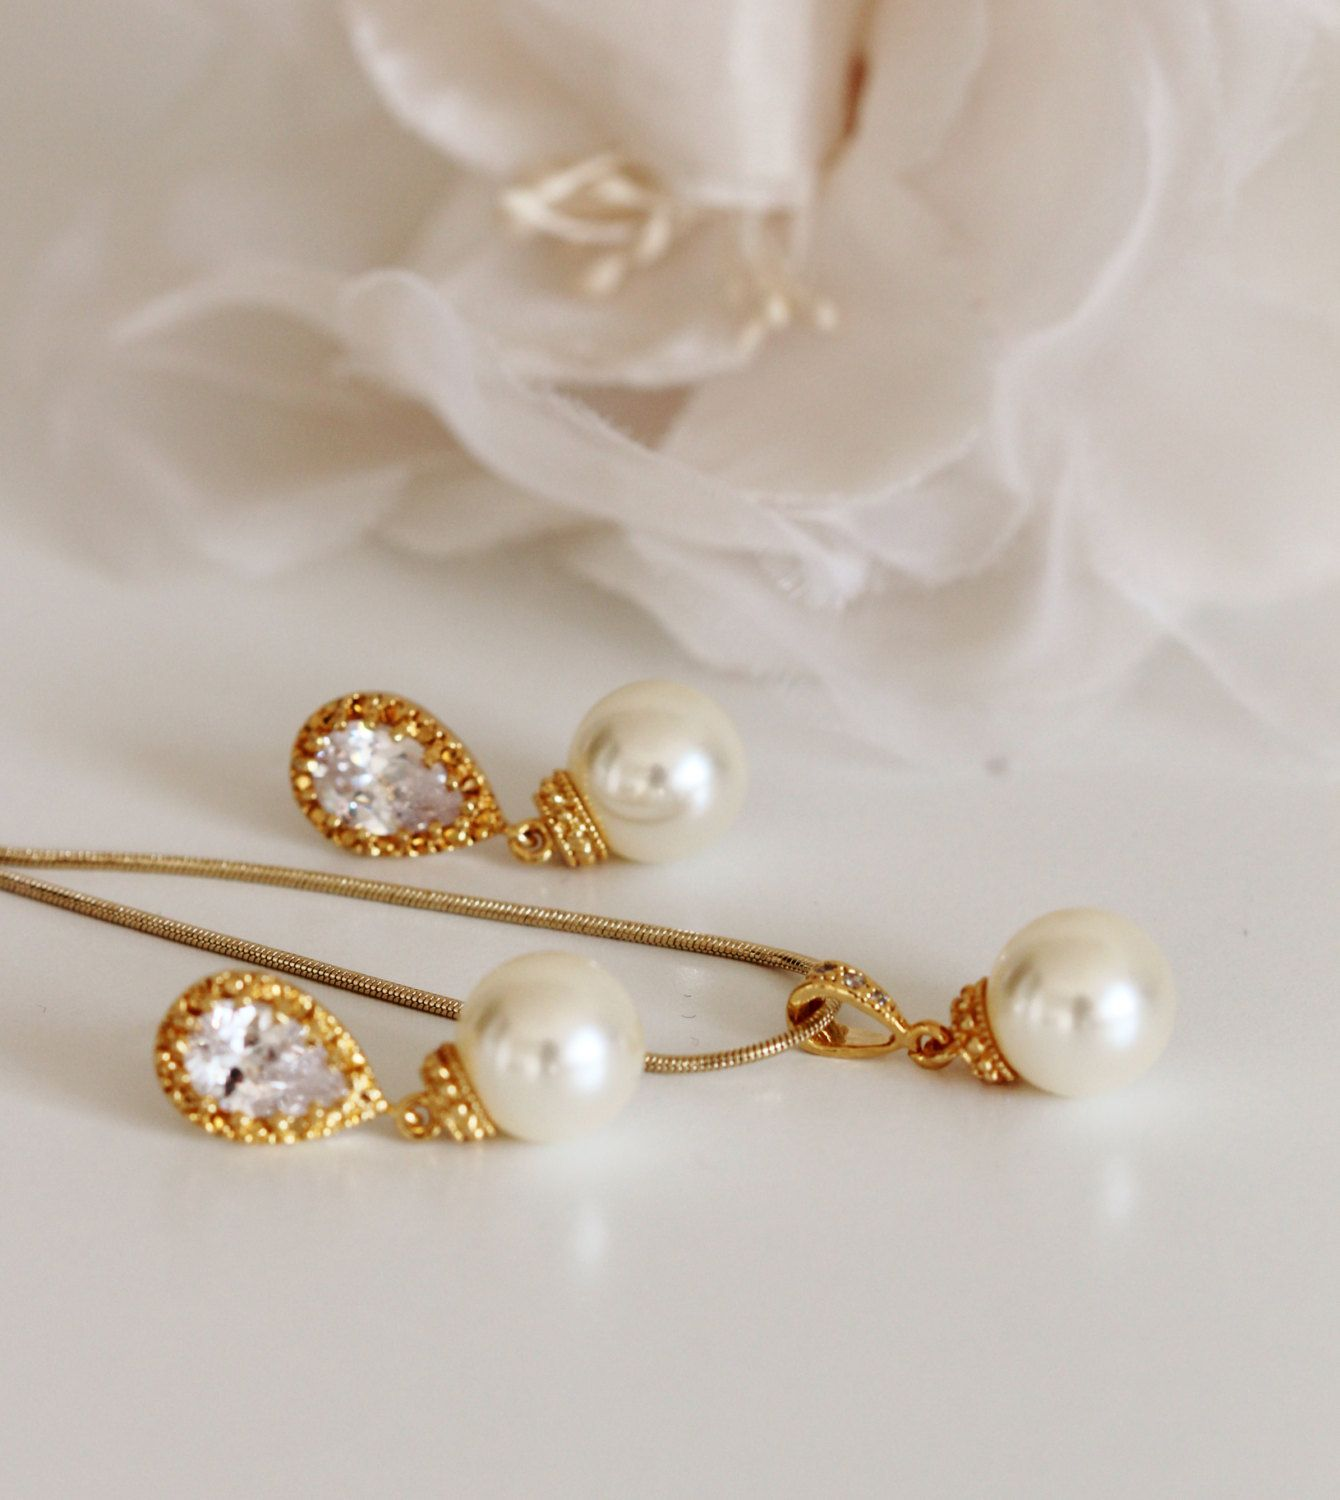 Gold Bridal Jewelry Set Pearl Wedding Gift Ideas Bridesmaid Mother Of The